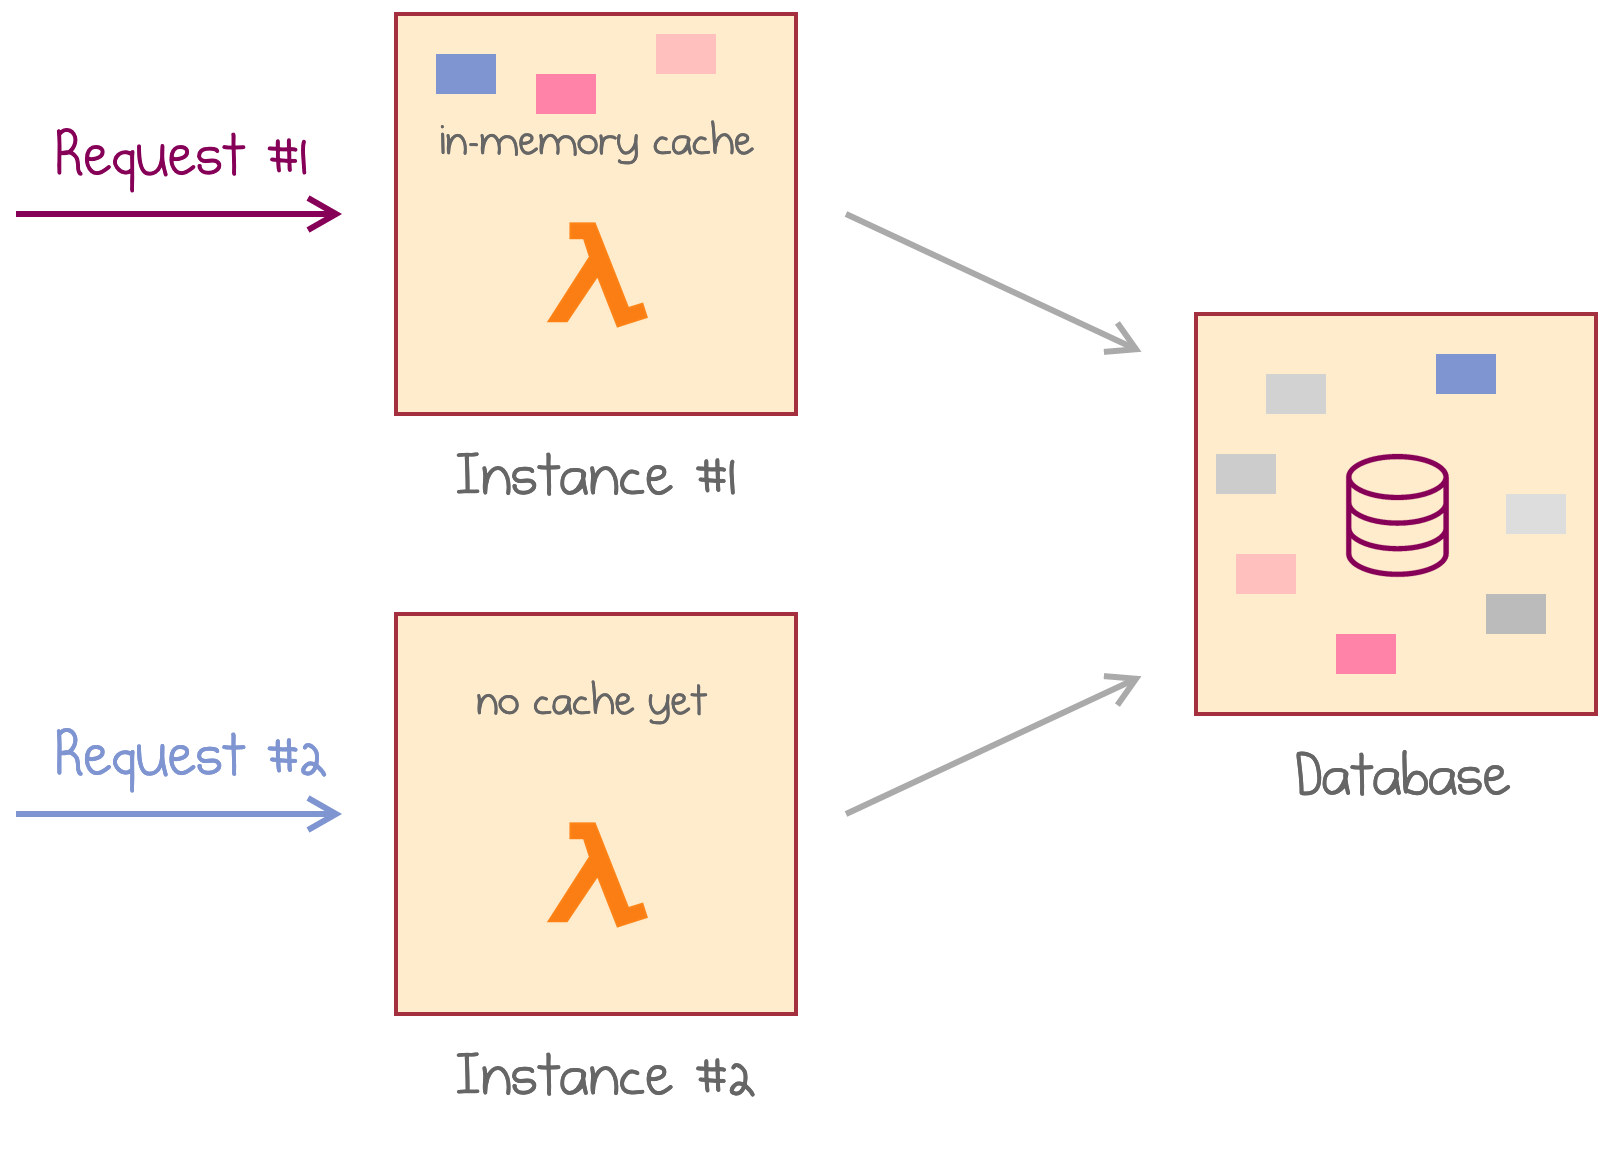 A parallel request hits the second instance with no cache available